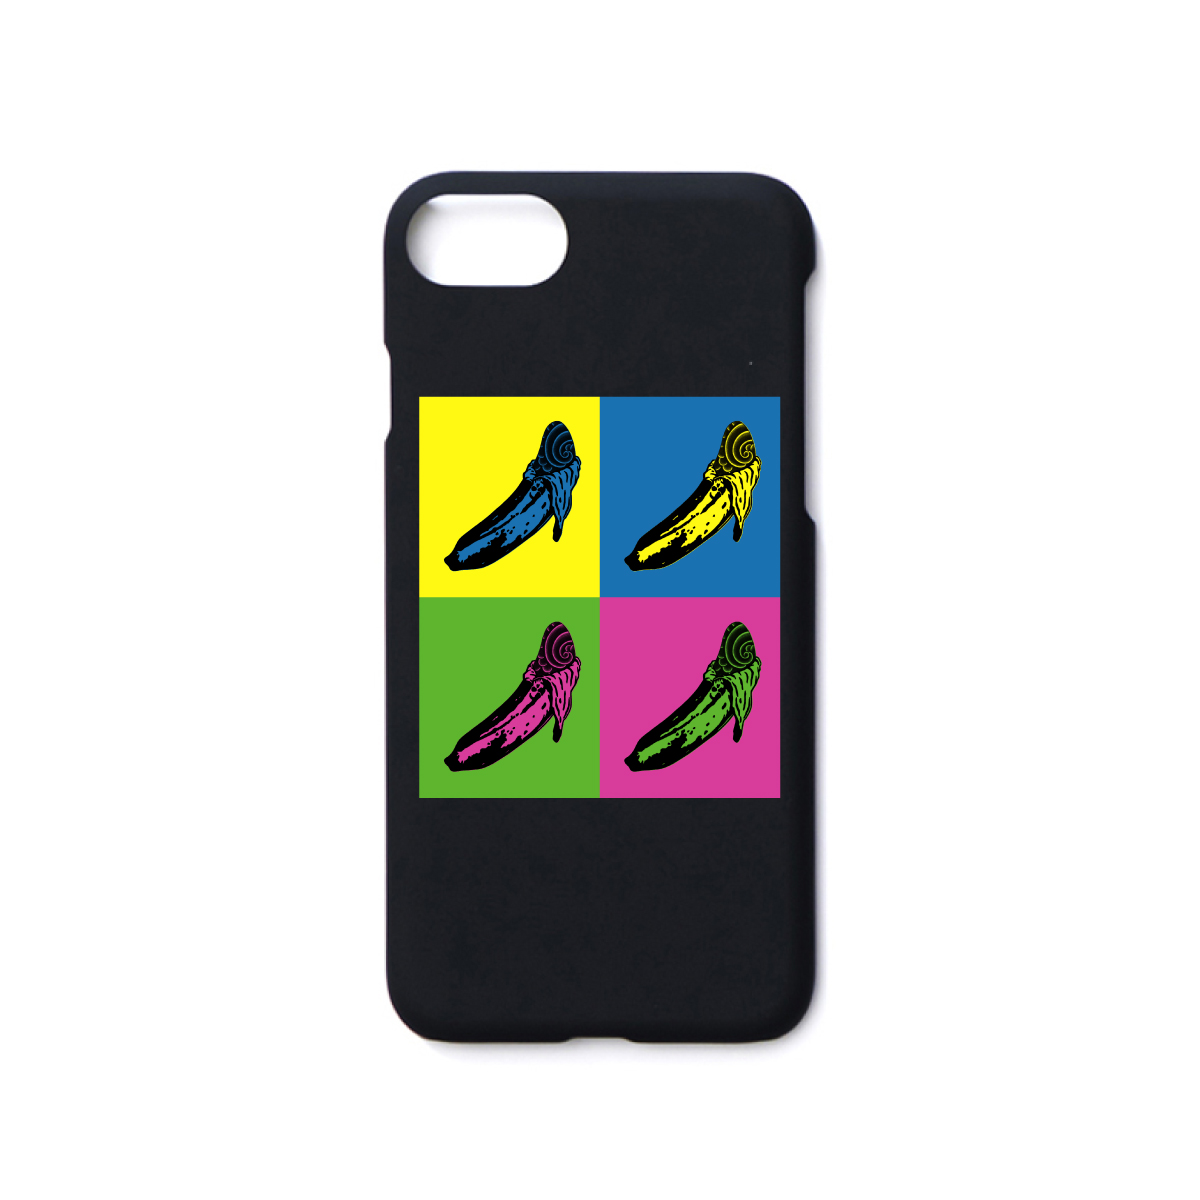 VELVETS iPhone case